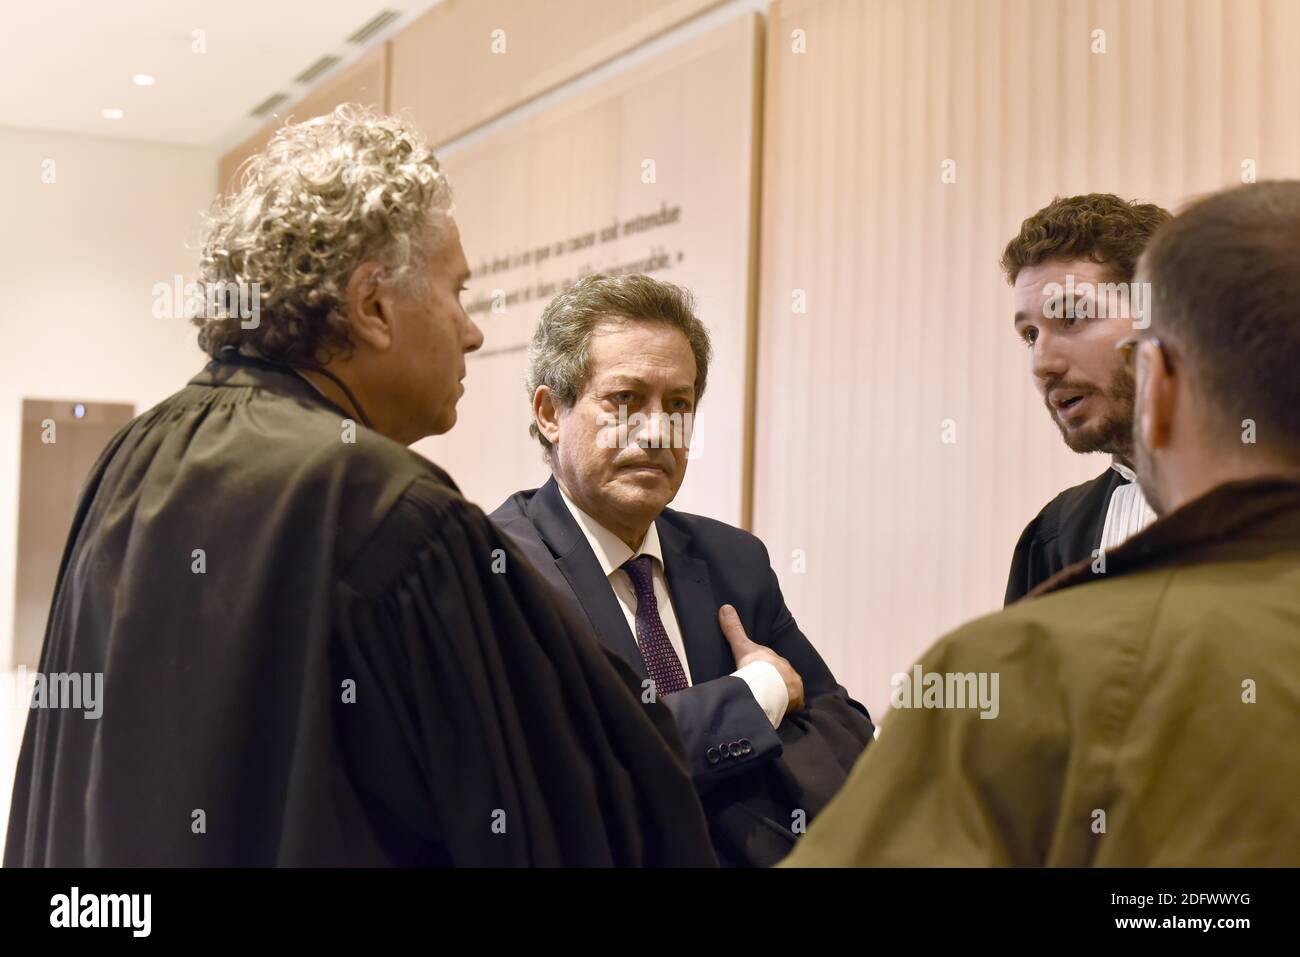 Robert Menard, William Goldnadel and Georges Fennec arriving at the High Court for the trial of 'Mur des cons' in Porte de Clichy, Paris, France, on December 04, 2018. Photo by Patrice Pierrot/ABACAPRESS.COM Stock Photo